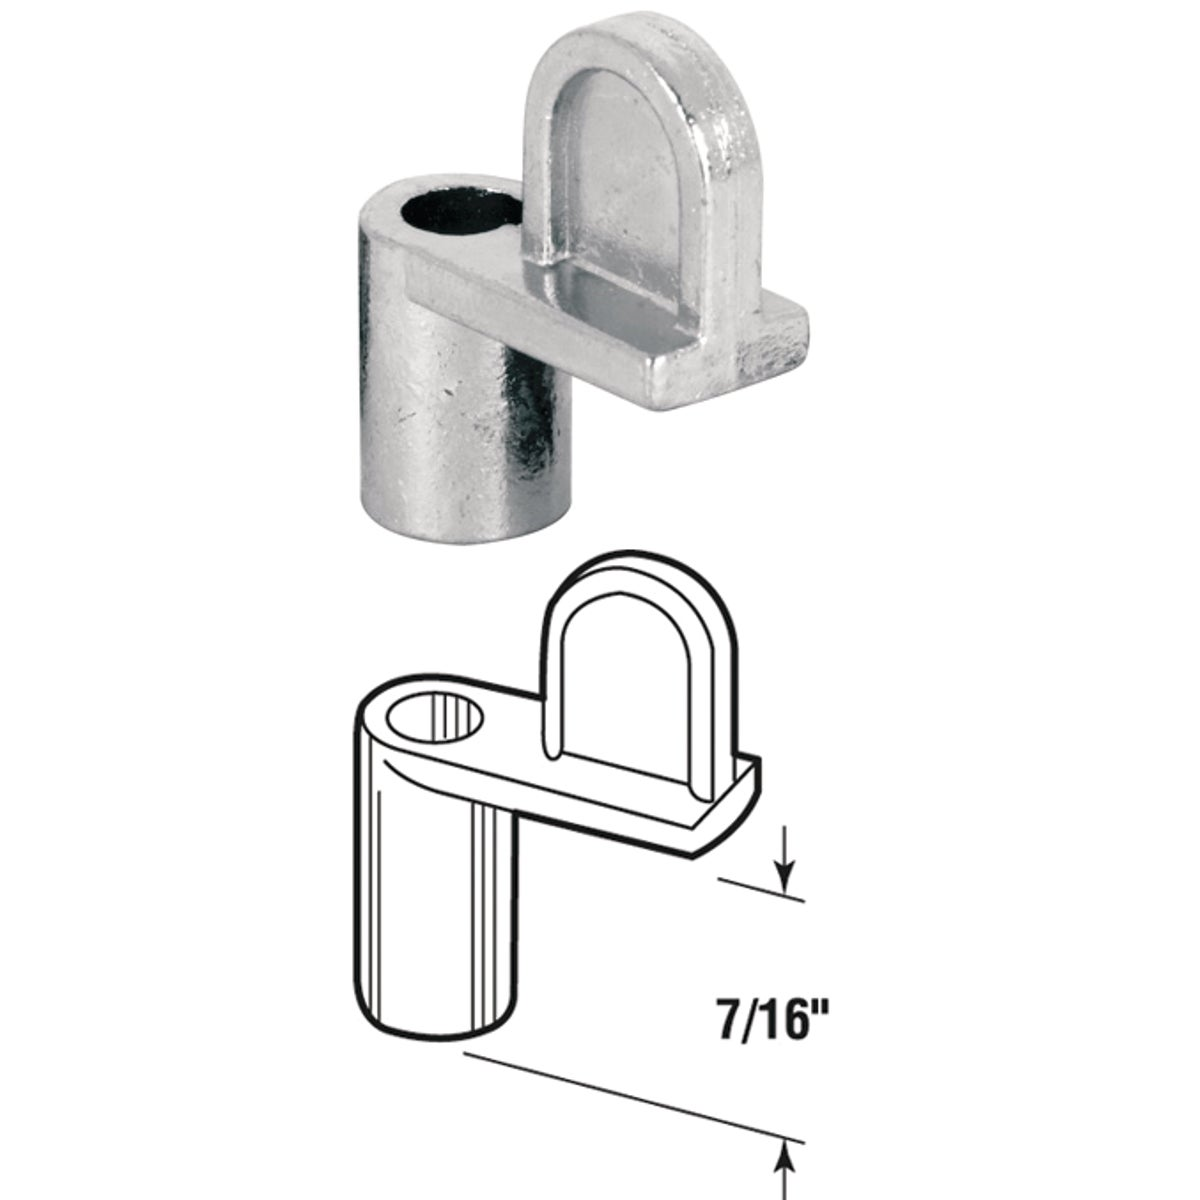 "7/16""WINDOW SCREEN CLIPS - 18107-7 by Prime Line Products"